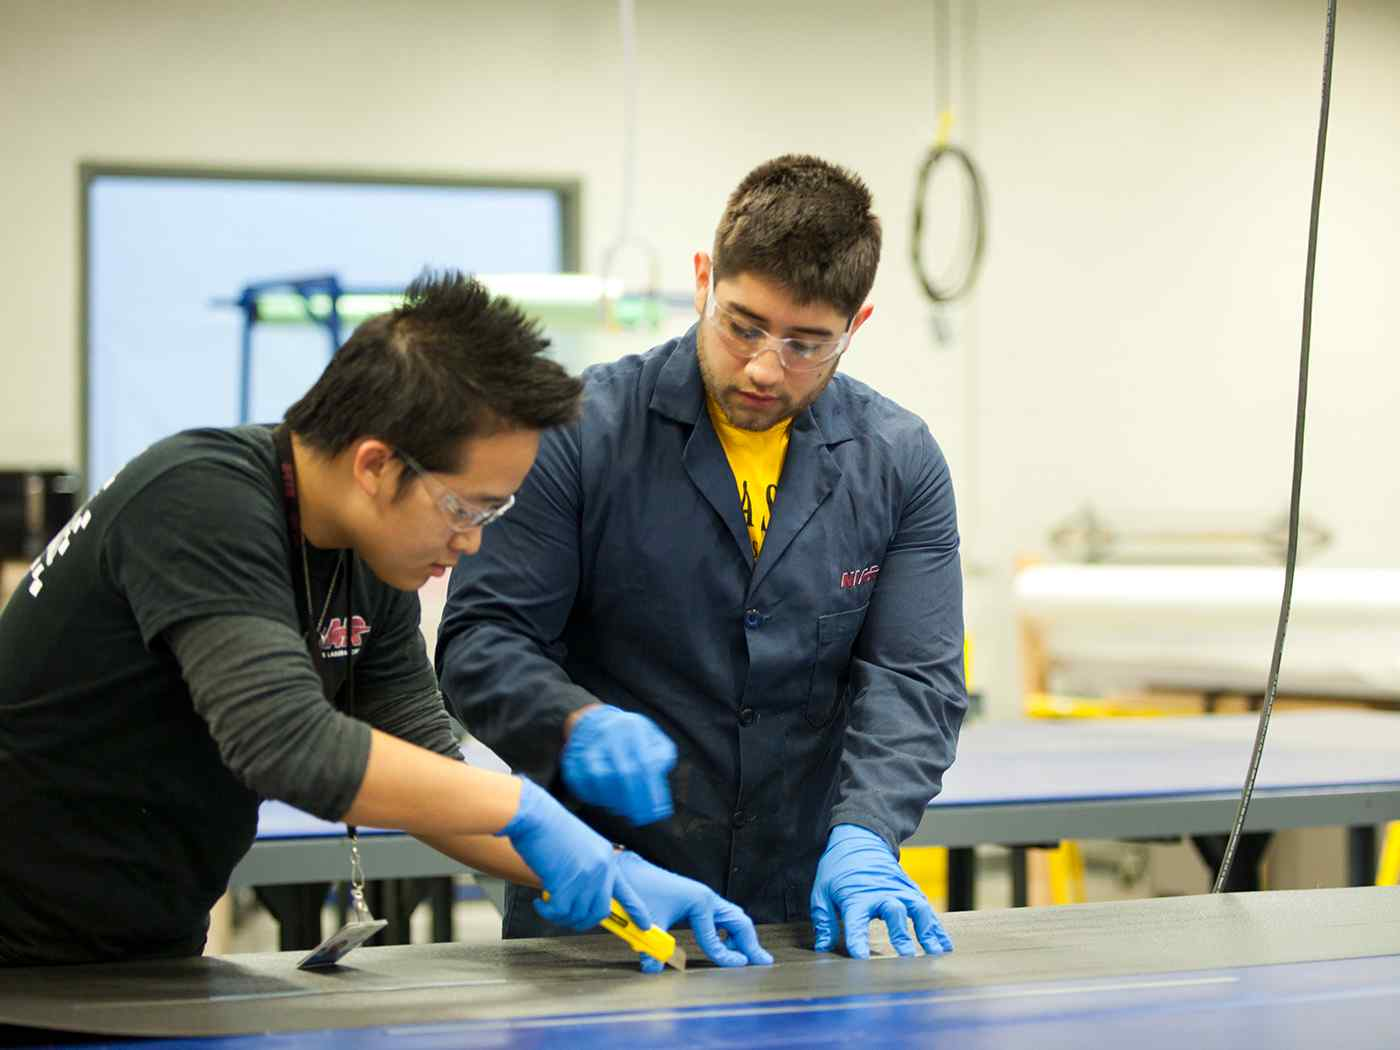 Engineering Graduate students working in NIAR lab.